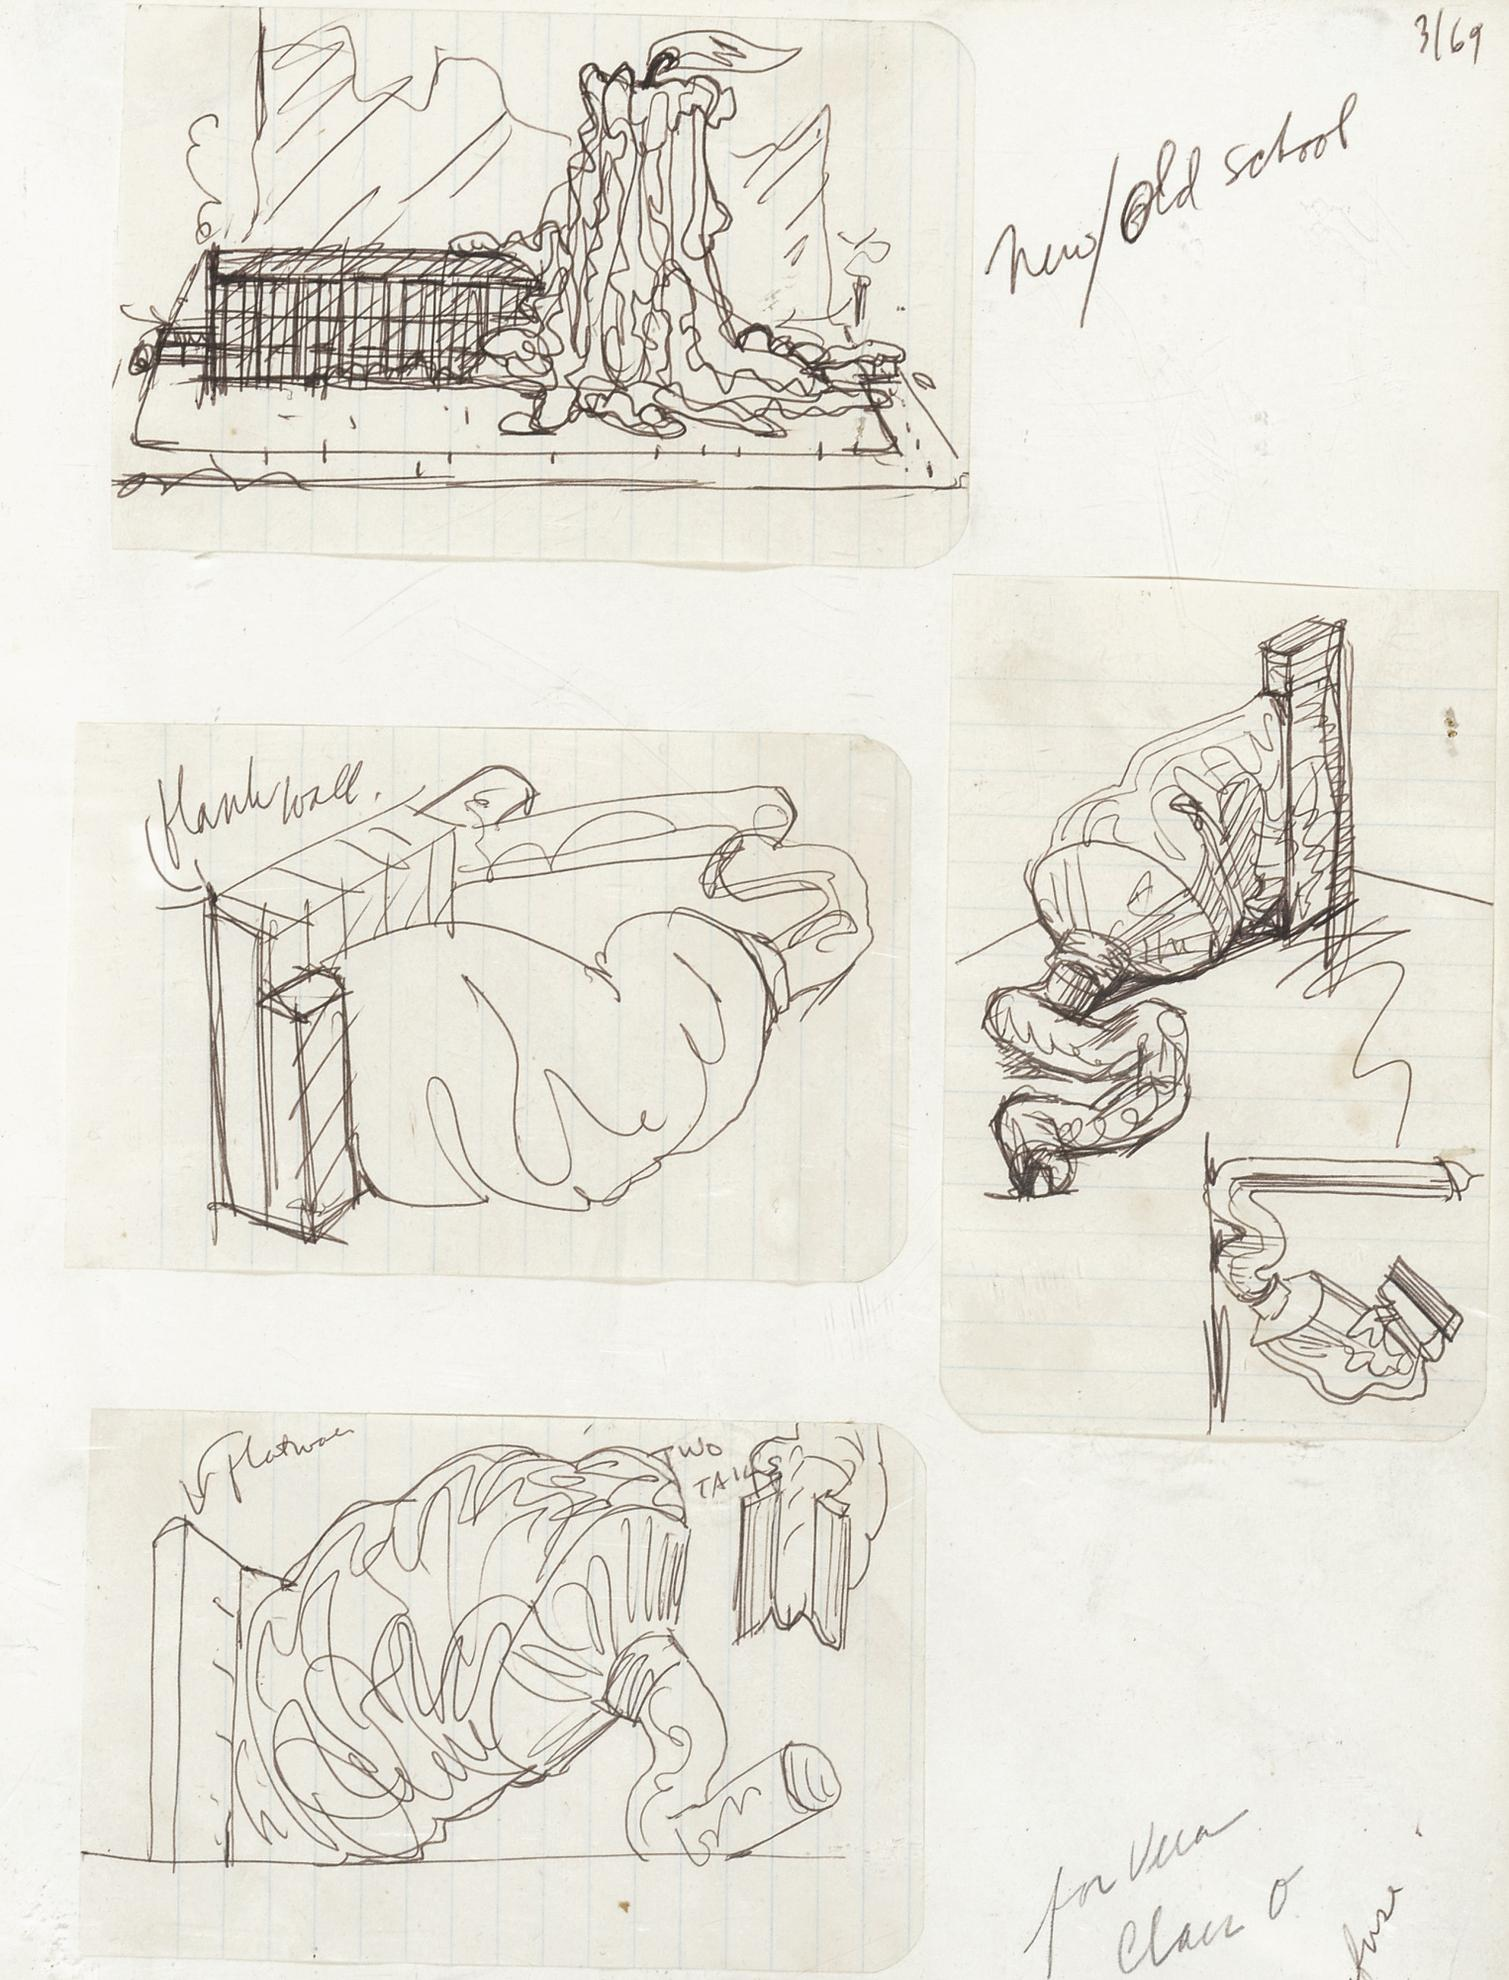 Claes Oldenburg-Notebook Page: Designs For The New School (Doodles During A Discussion Of The Subject)-1969